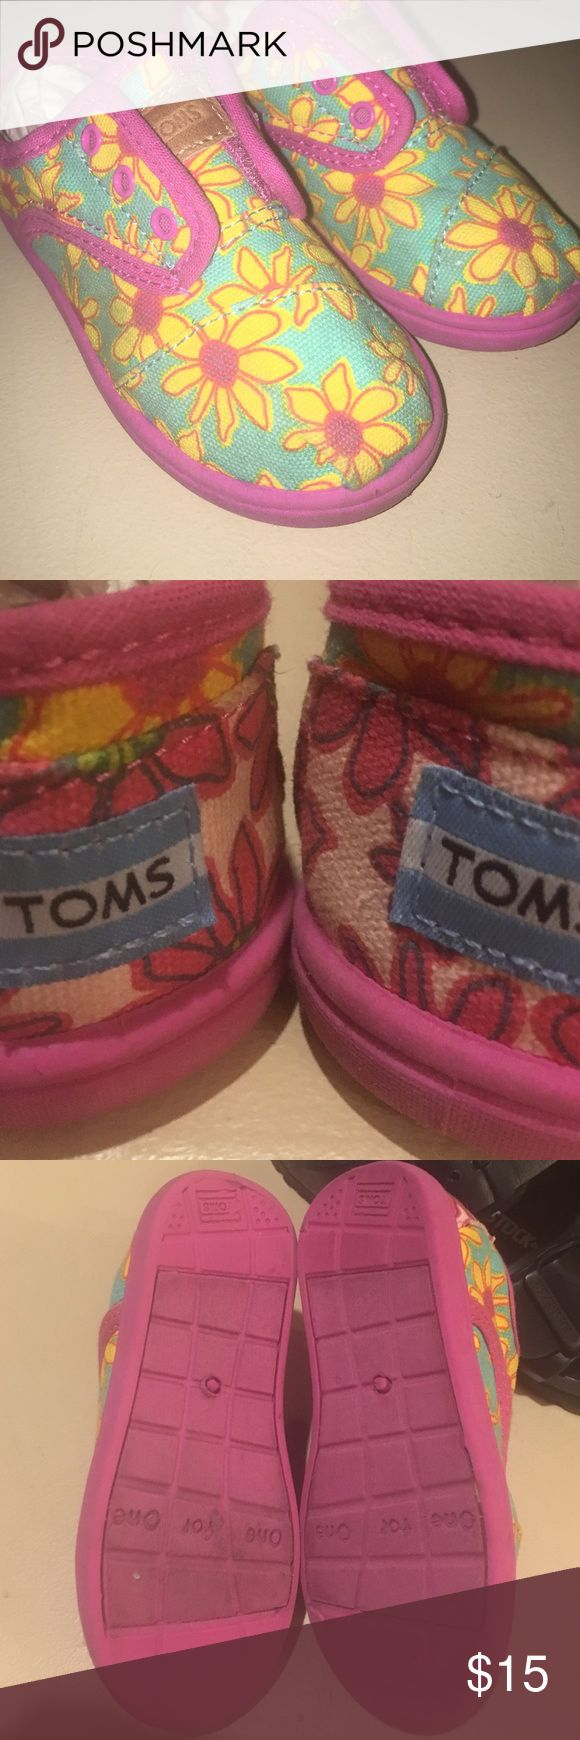 EUC Toms for girls Toddler SZ9 $45 Like new. Pink turquoise and bright yellow. Velcro hidden behind faux lace up front. Toms gives a new pair of shoes to a child in need with every pair purchased, so these shoes were a blessing to someone already. ❌trades ❌box❌tags TOMS Shoes